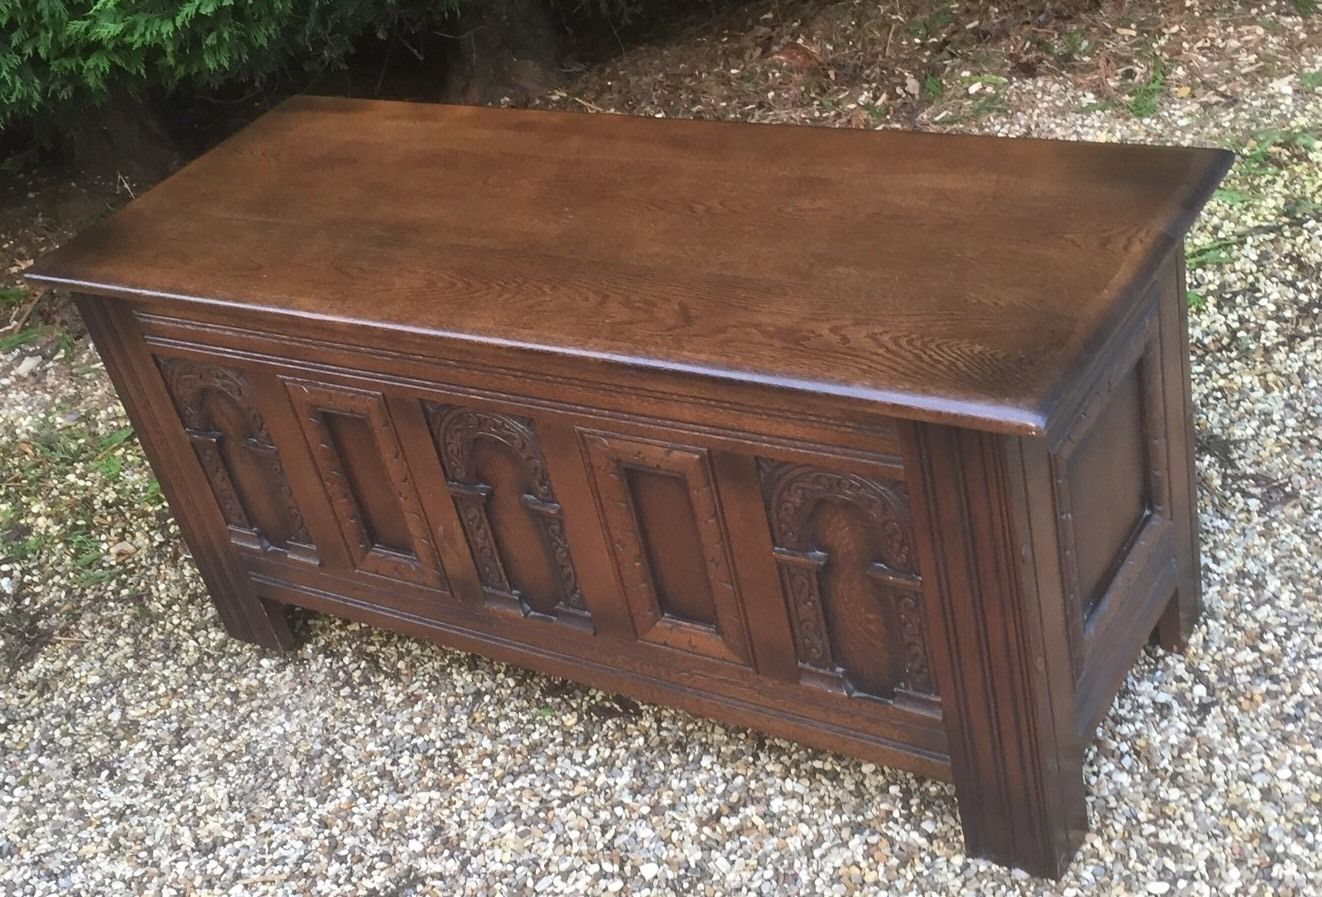 Coffee Table Toy Chest.Superb Carved Oak Old Charm Rug Toy Chest Blanket Box Coffee Table